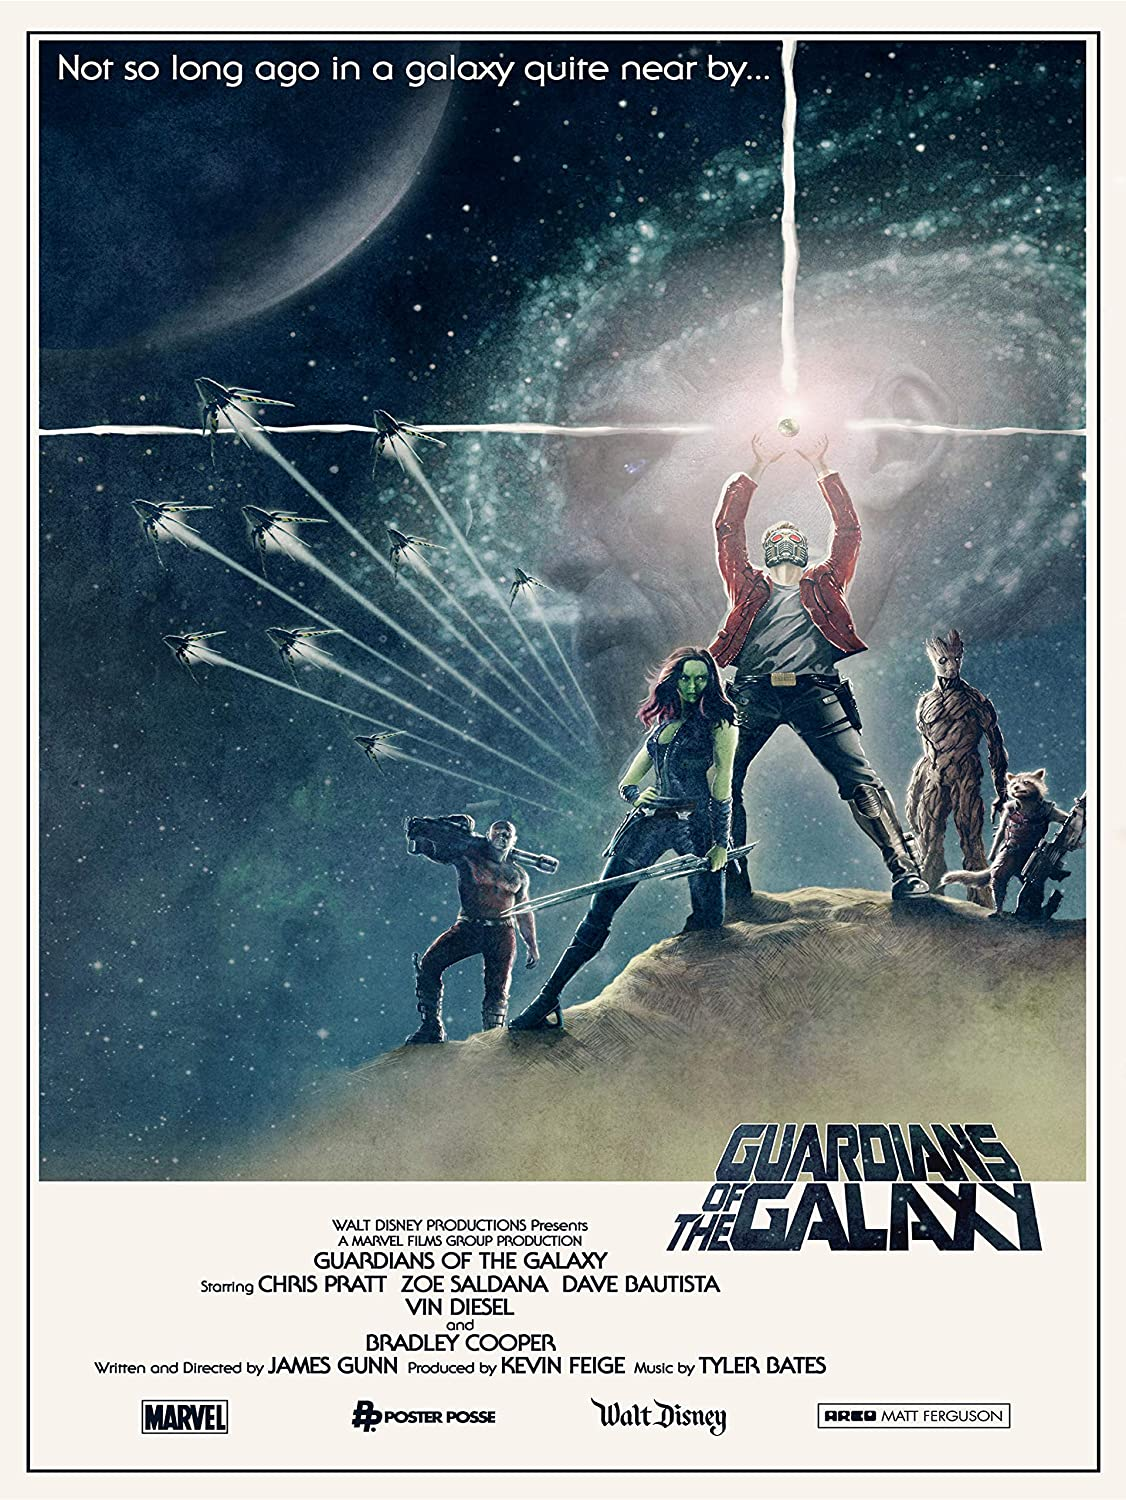 Gryposaurus Guardians of The Galaxy Movie Film Poster 18 × 24 Inches